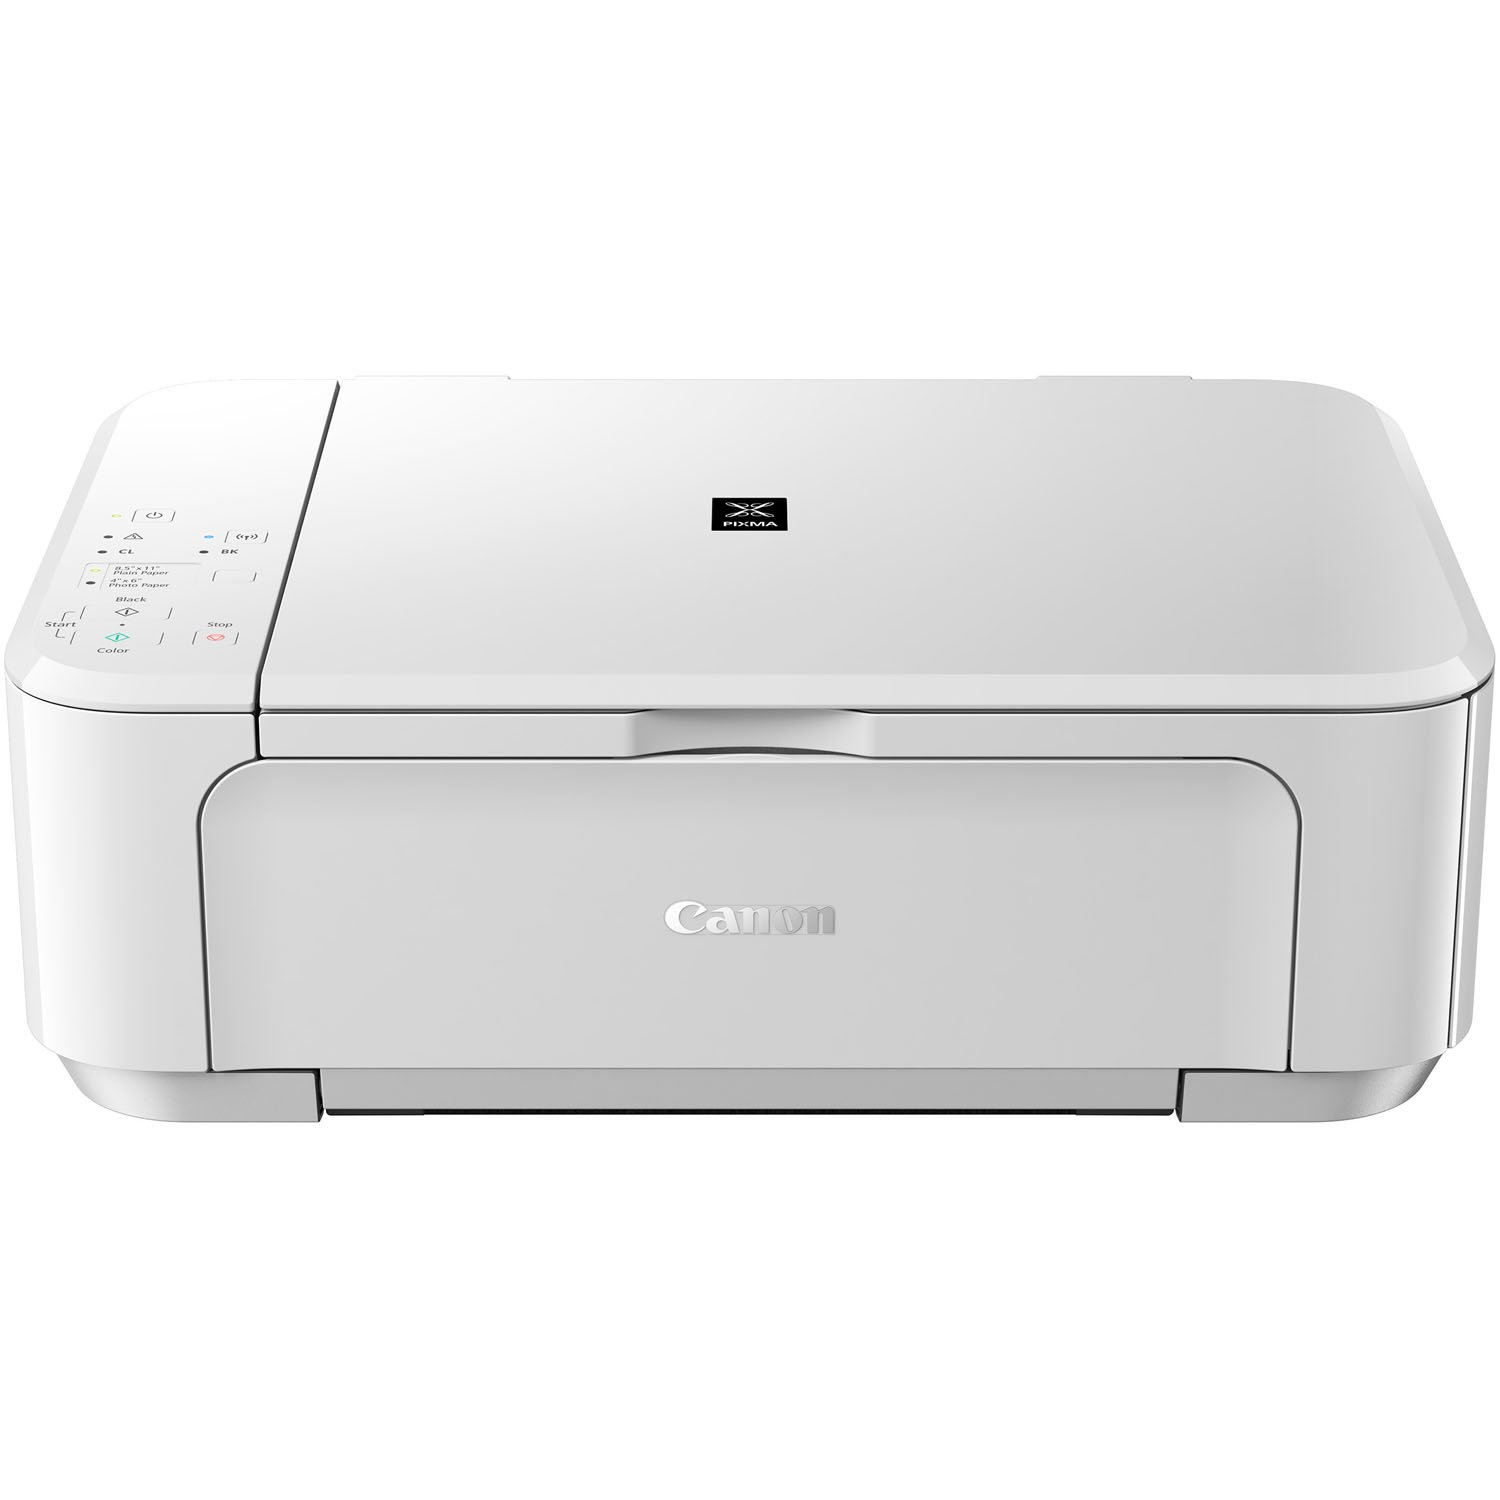 Canon PIXMA MG3520 WH Wireless Color Photo Printer with Scanner and Copier